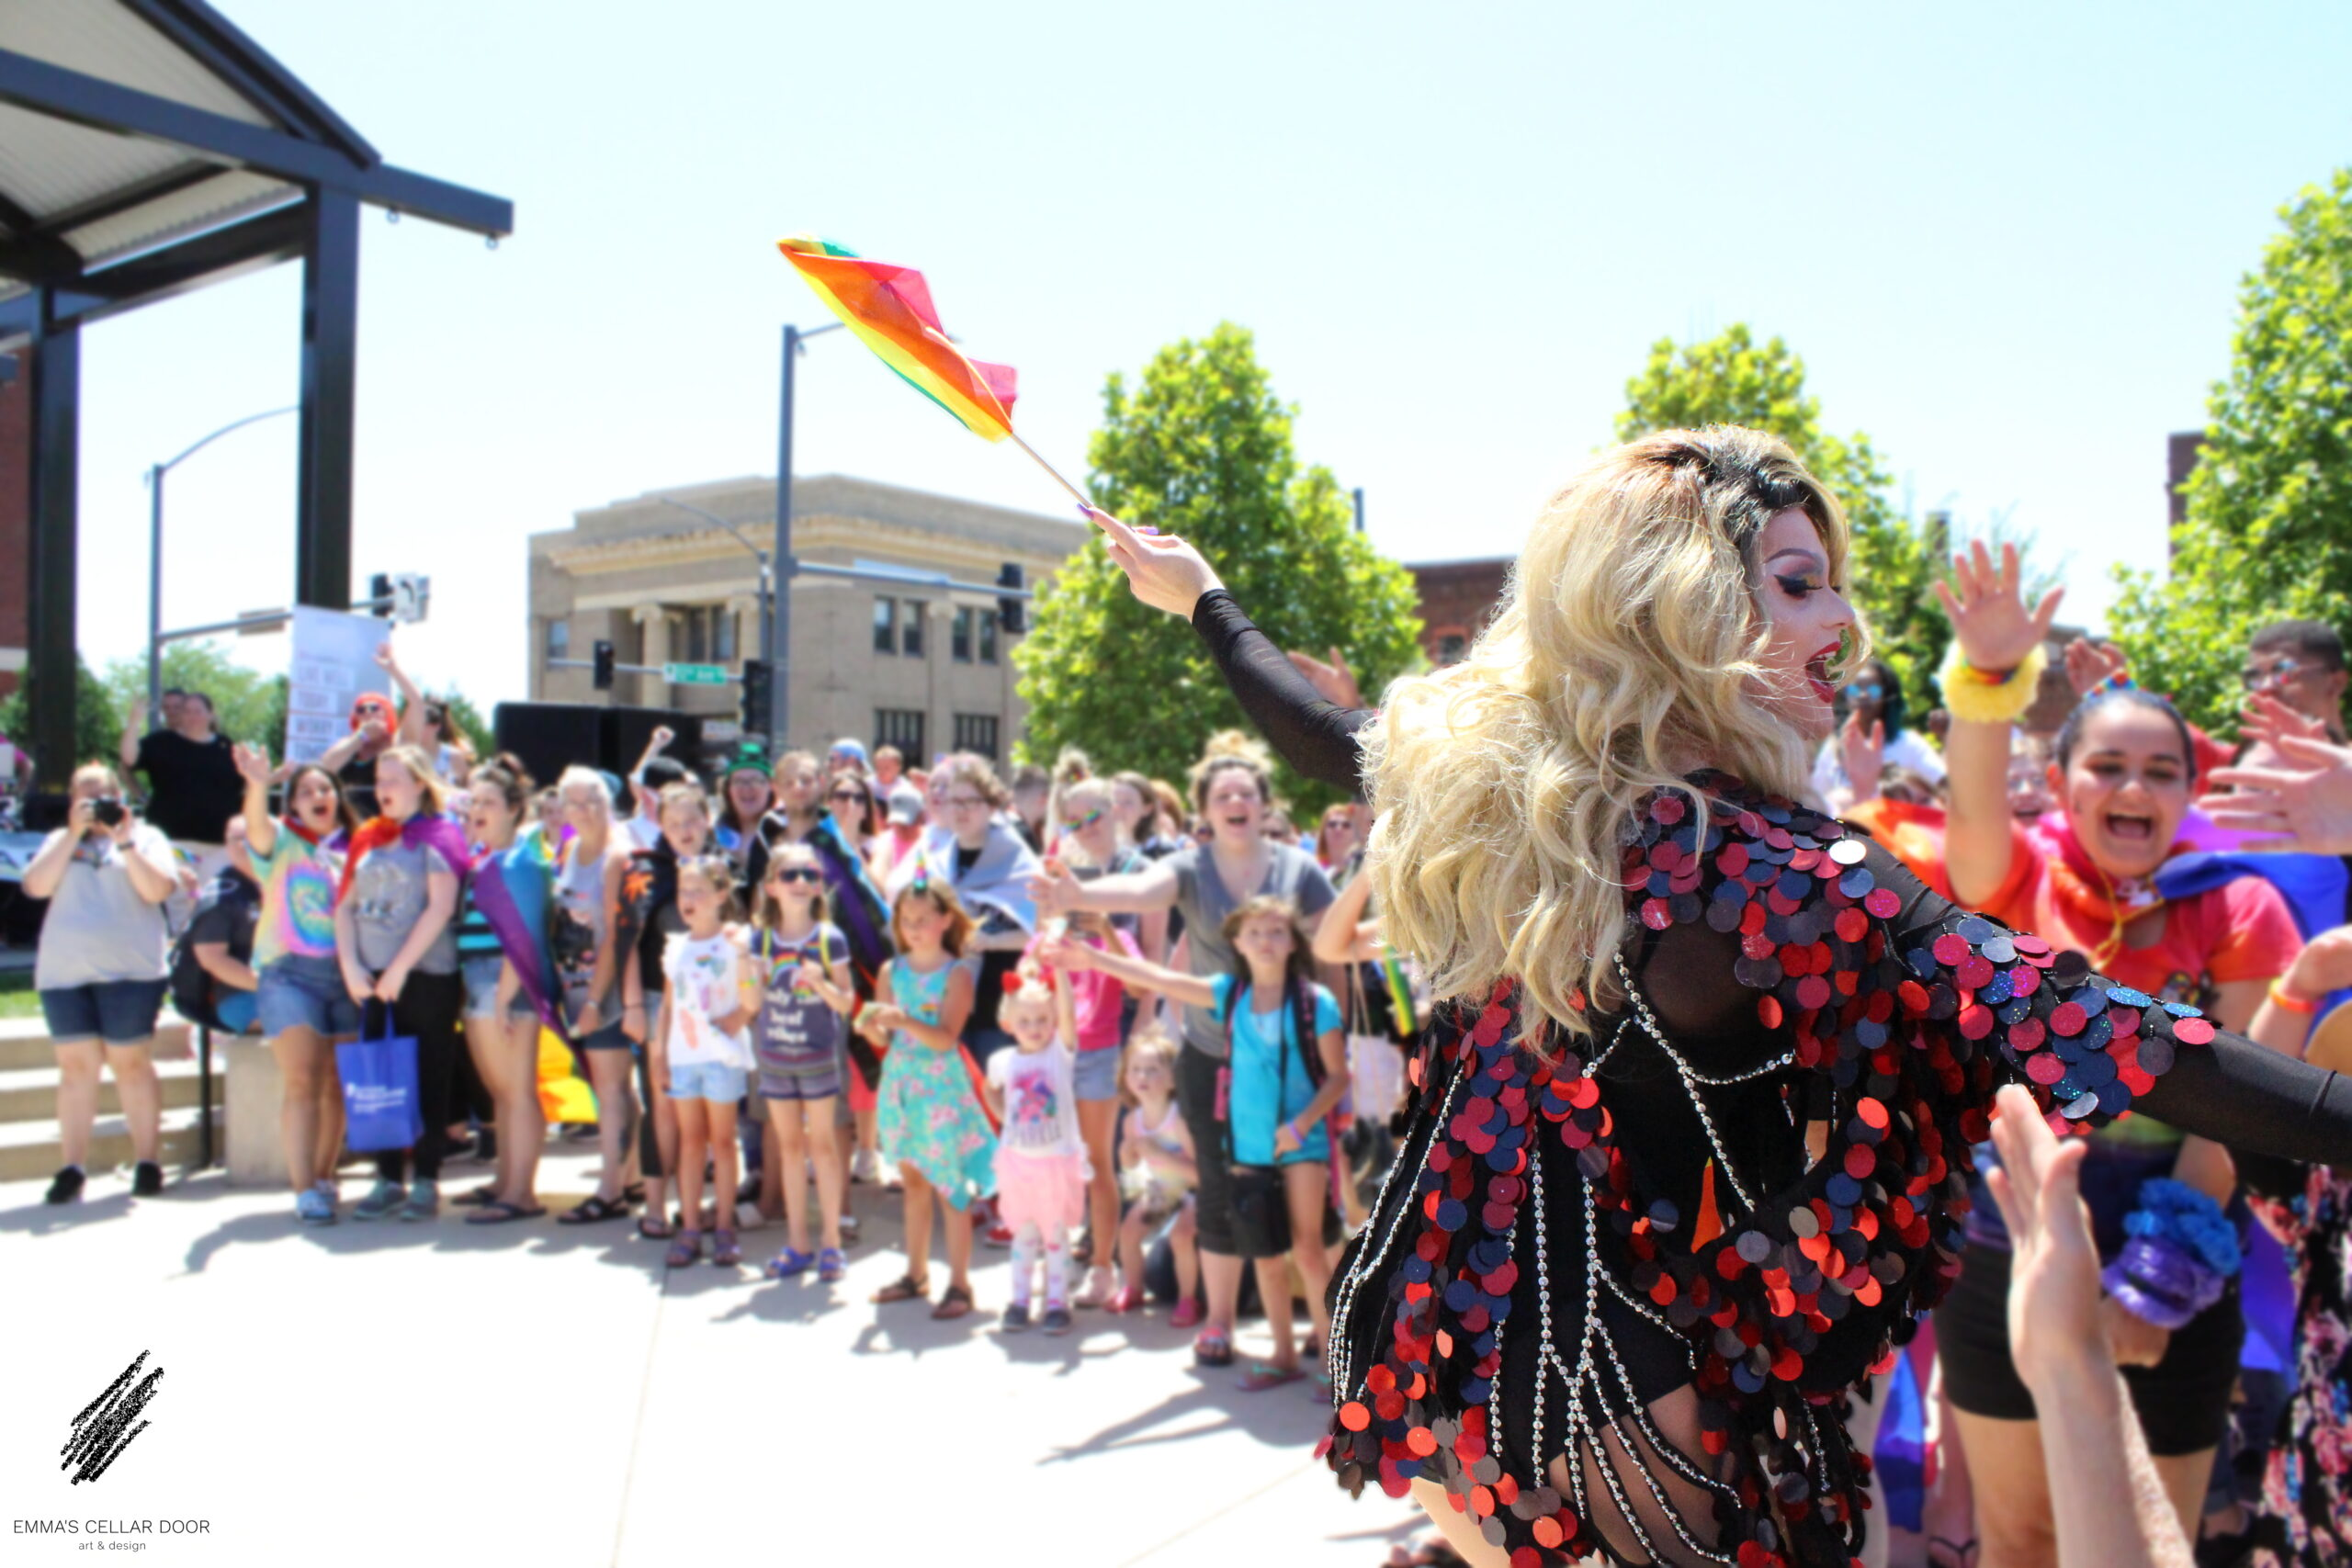 Iowa's LGBT groups balance community and COVID for Pride month plans